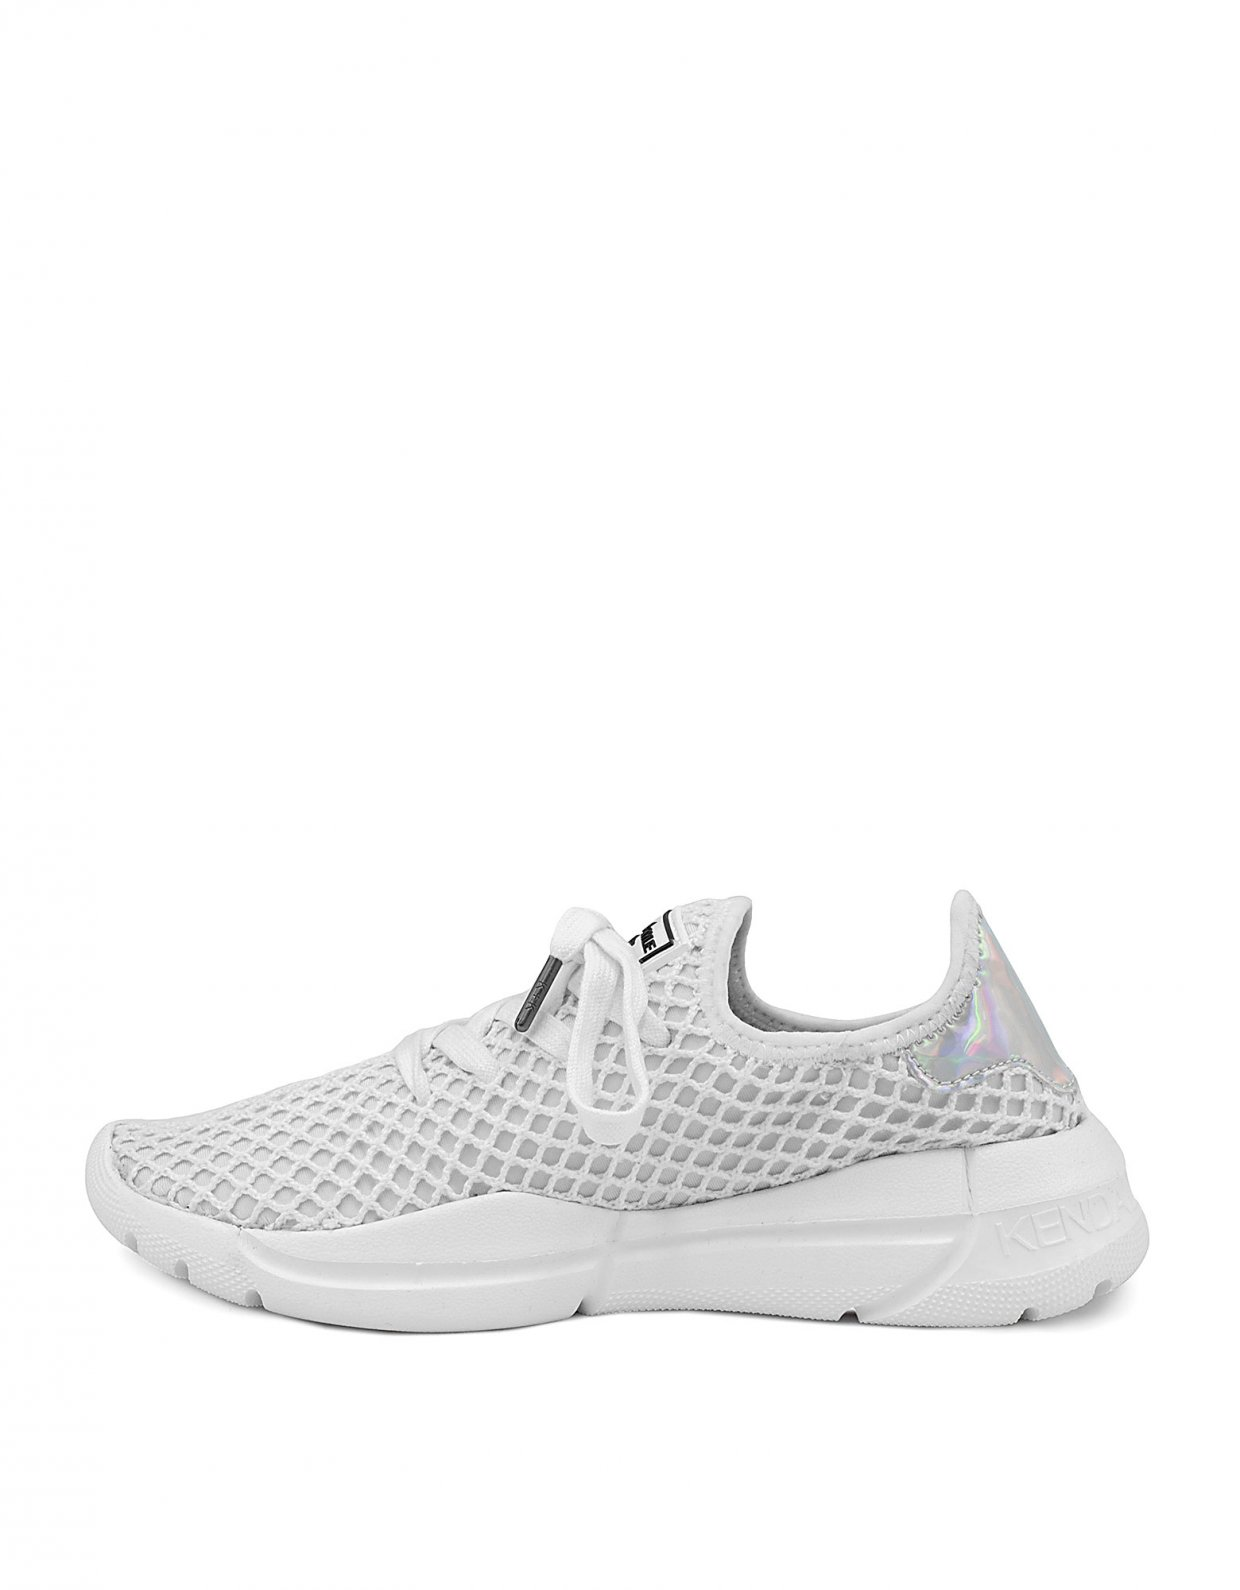 Kendall + Kylie Norad sneakers white